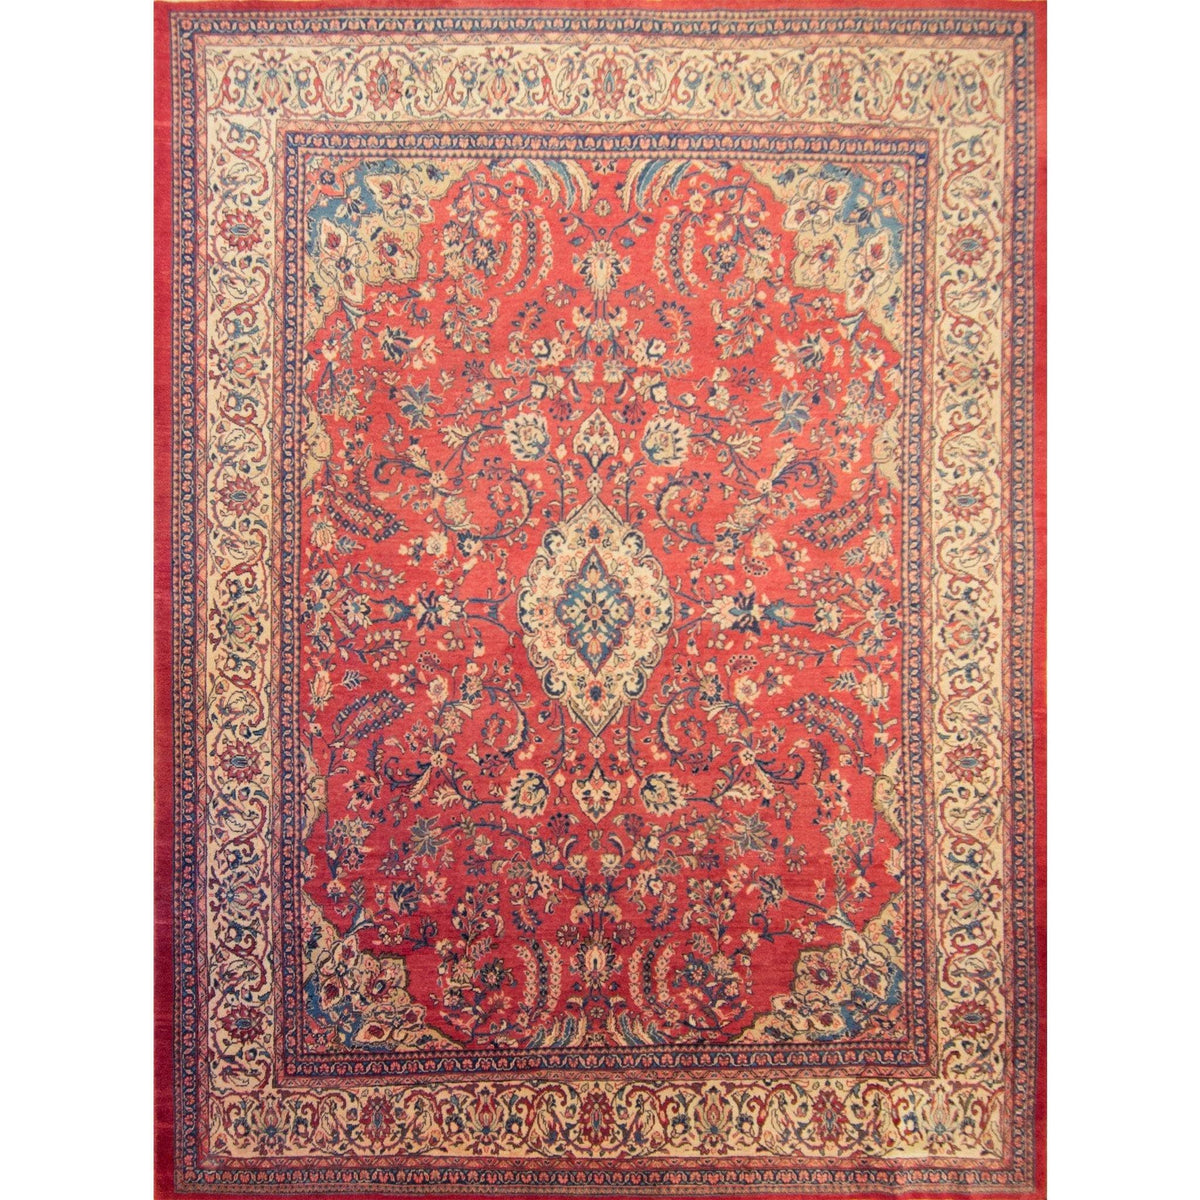 Fine Hand-knotted Persian Kashmar Rug 290cm x 385cm Persian-Rug | House-of-Haghi | NewMarket | Auckland | NZ | Handmade Persian Rugs | Hand Knotted Persian Rugs